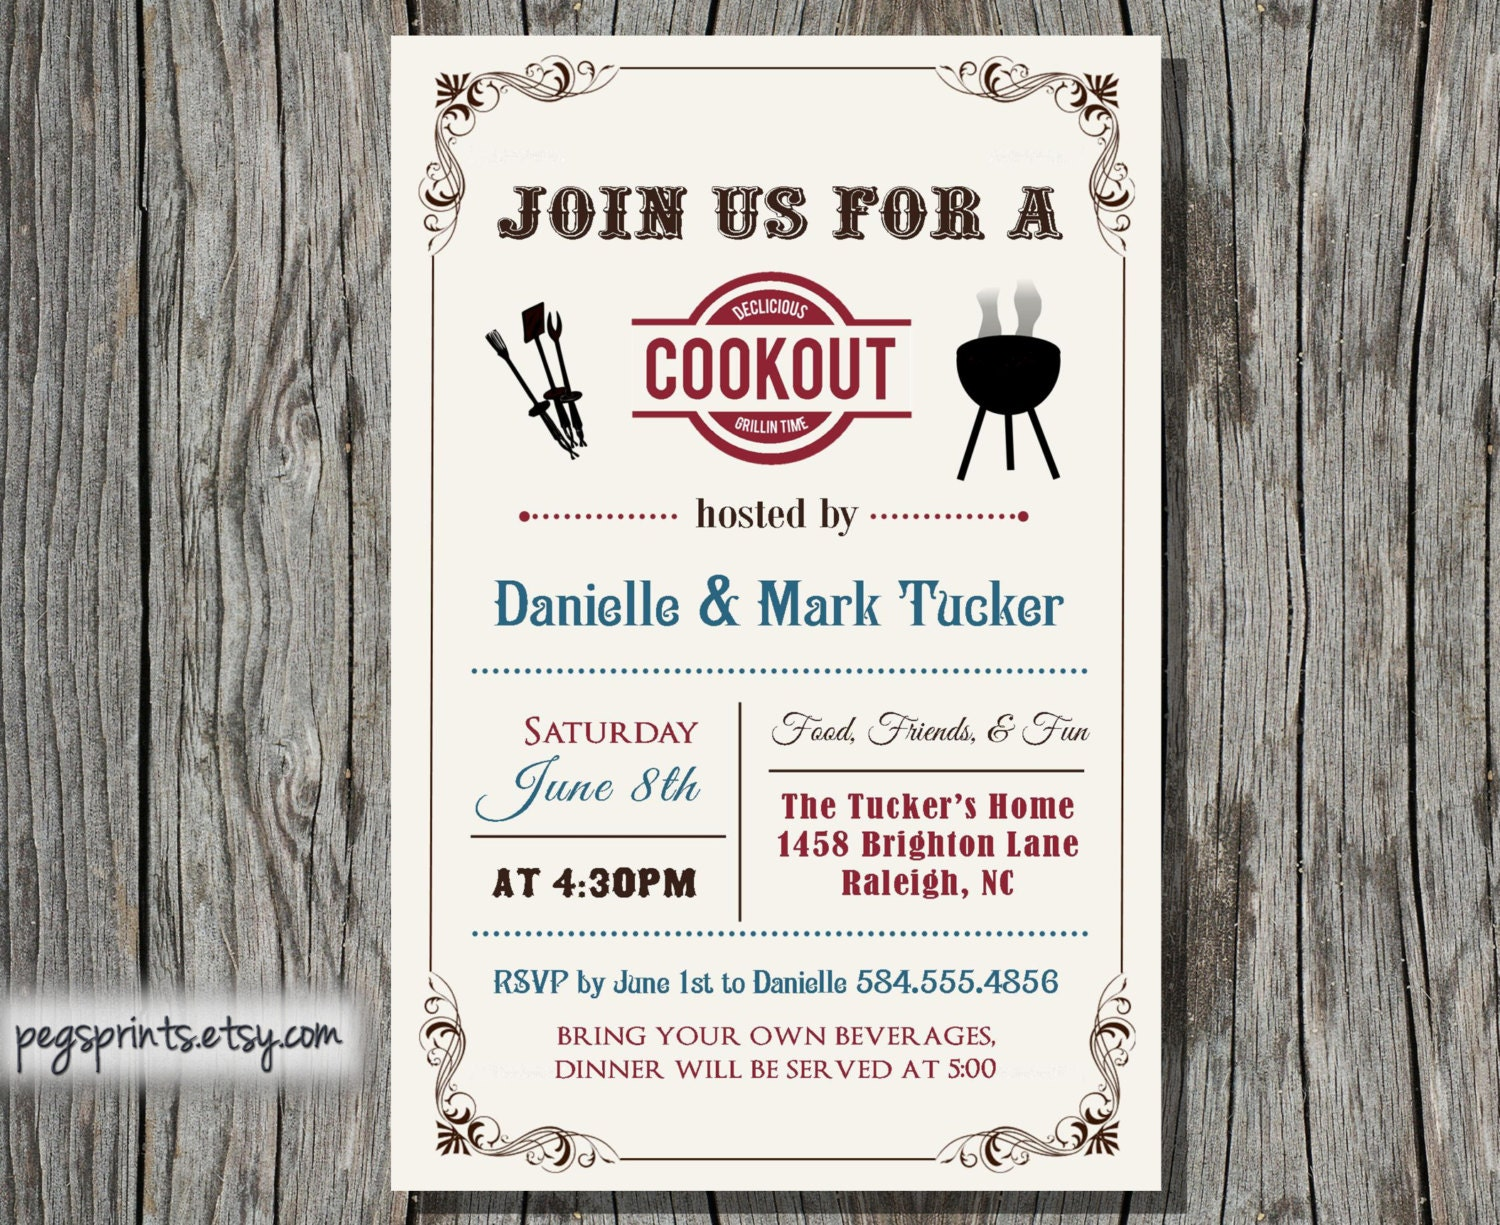 Cookout Invitation Summer Family BBQ Printable by PegsPrints: https://www.etsy.com/listing/150531494/cookout-invitation-summer...